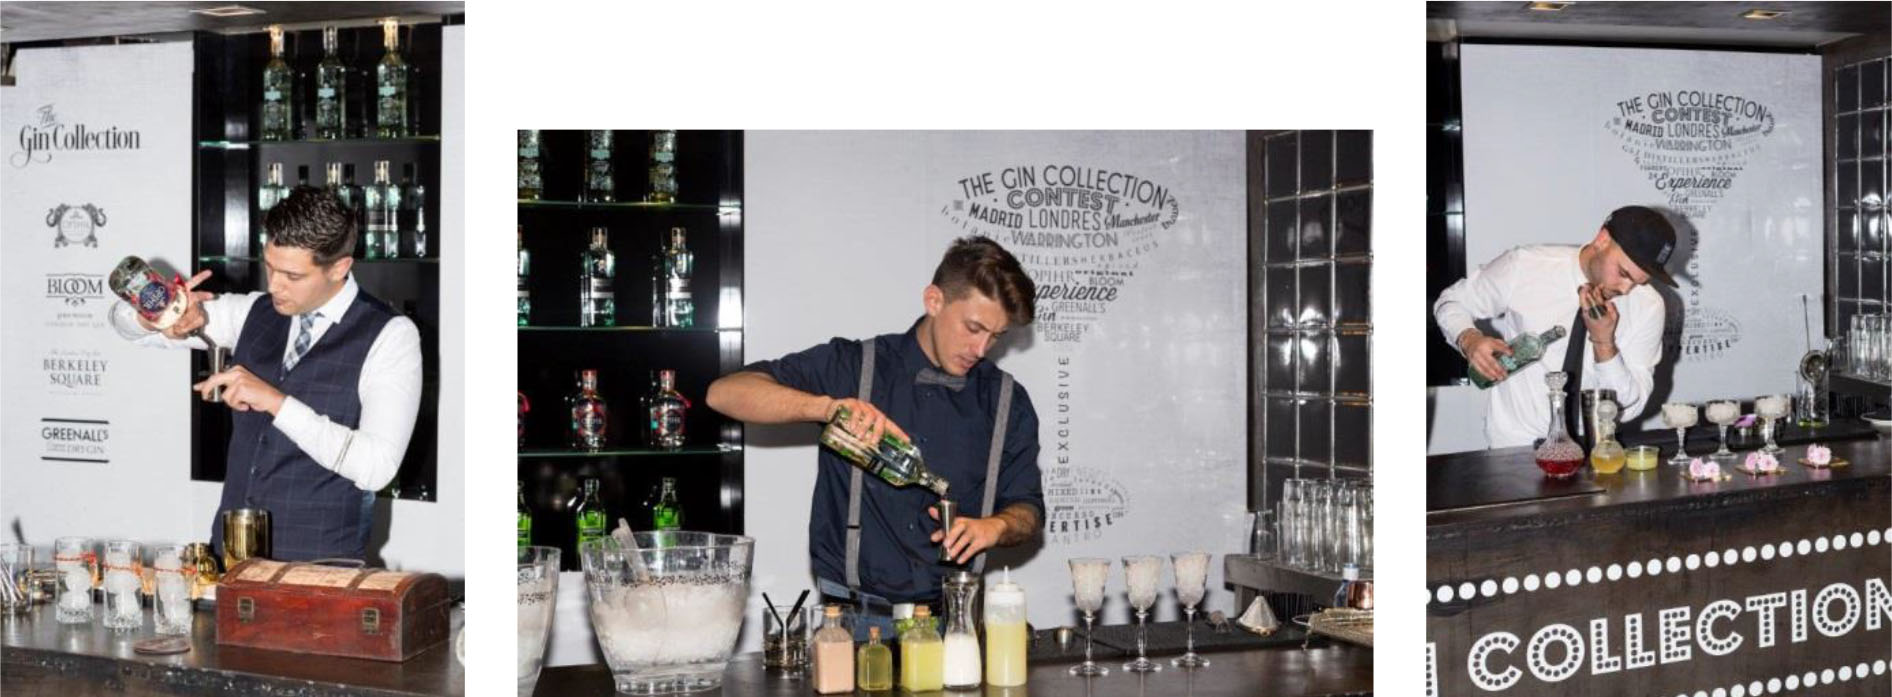 Ganadores The Gin Collection Contest